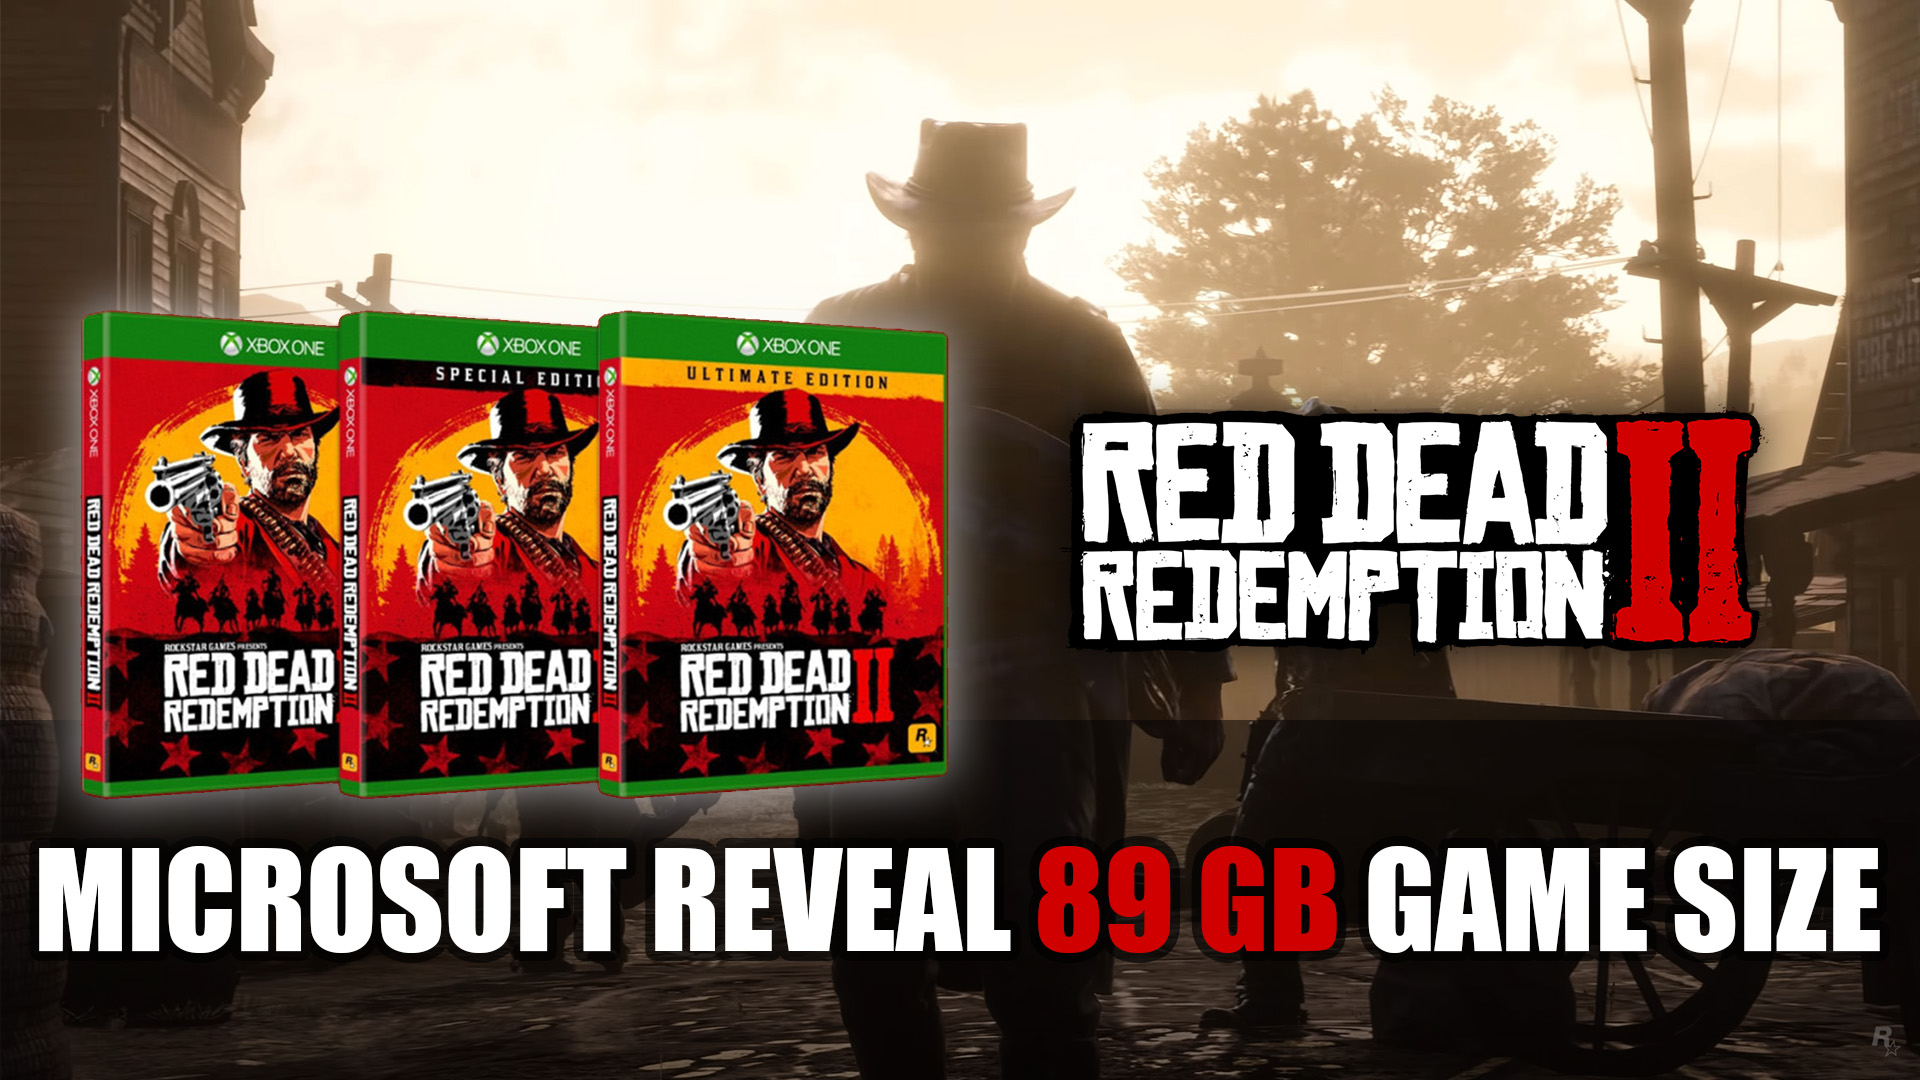 Red Dead Redemption 2 89 GB File Size Revealed for Xbox One   Fextralife